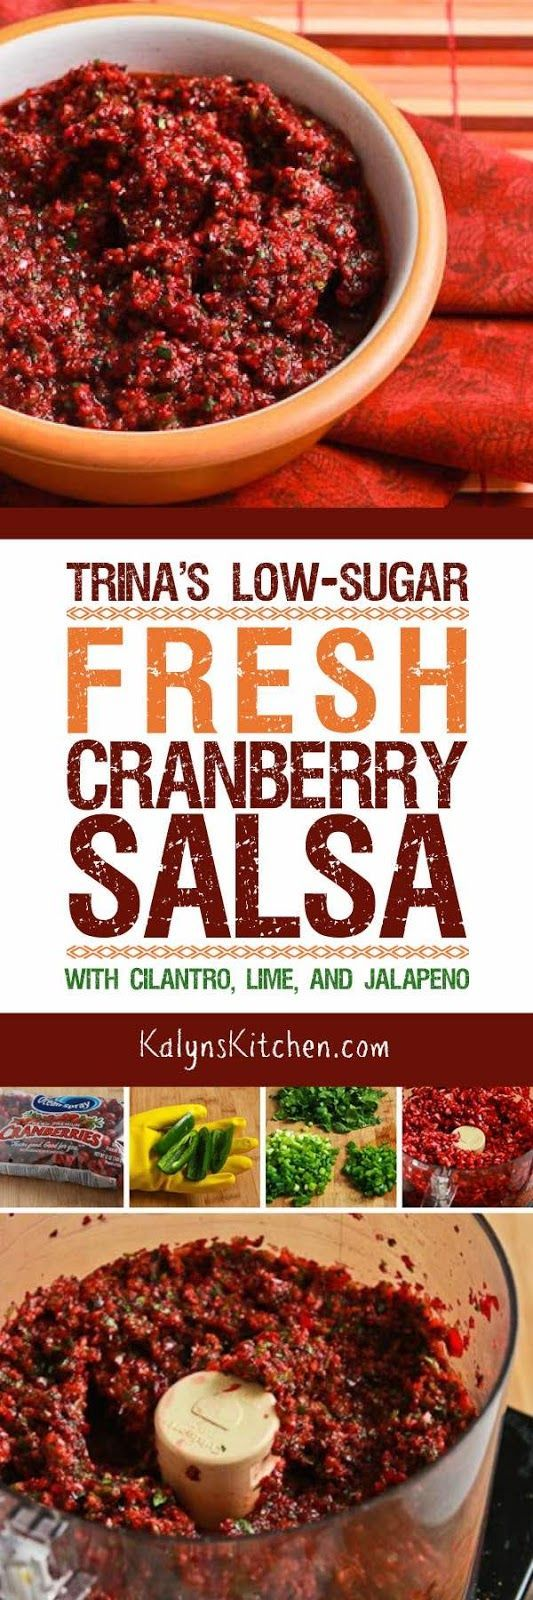 My friend Trina's Low-Sugar Fresh Cranberry Salsa with Cilantro, Lime ...